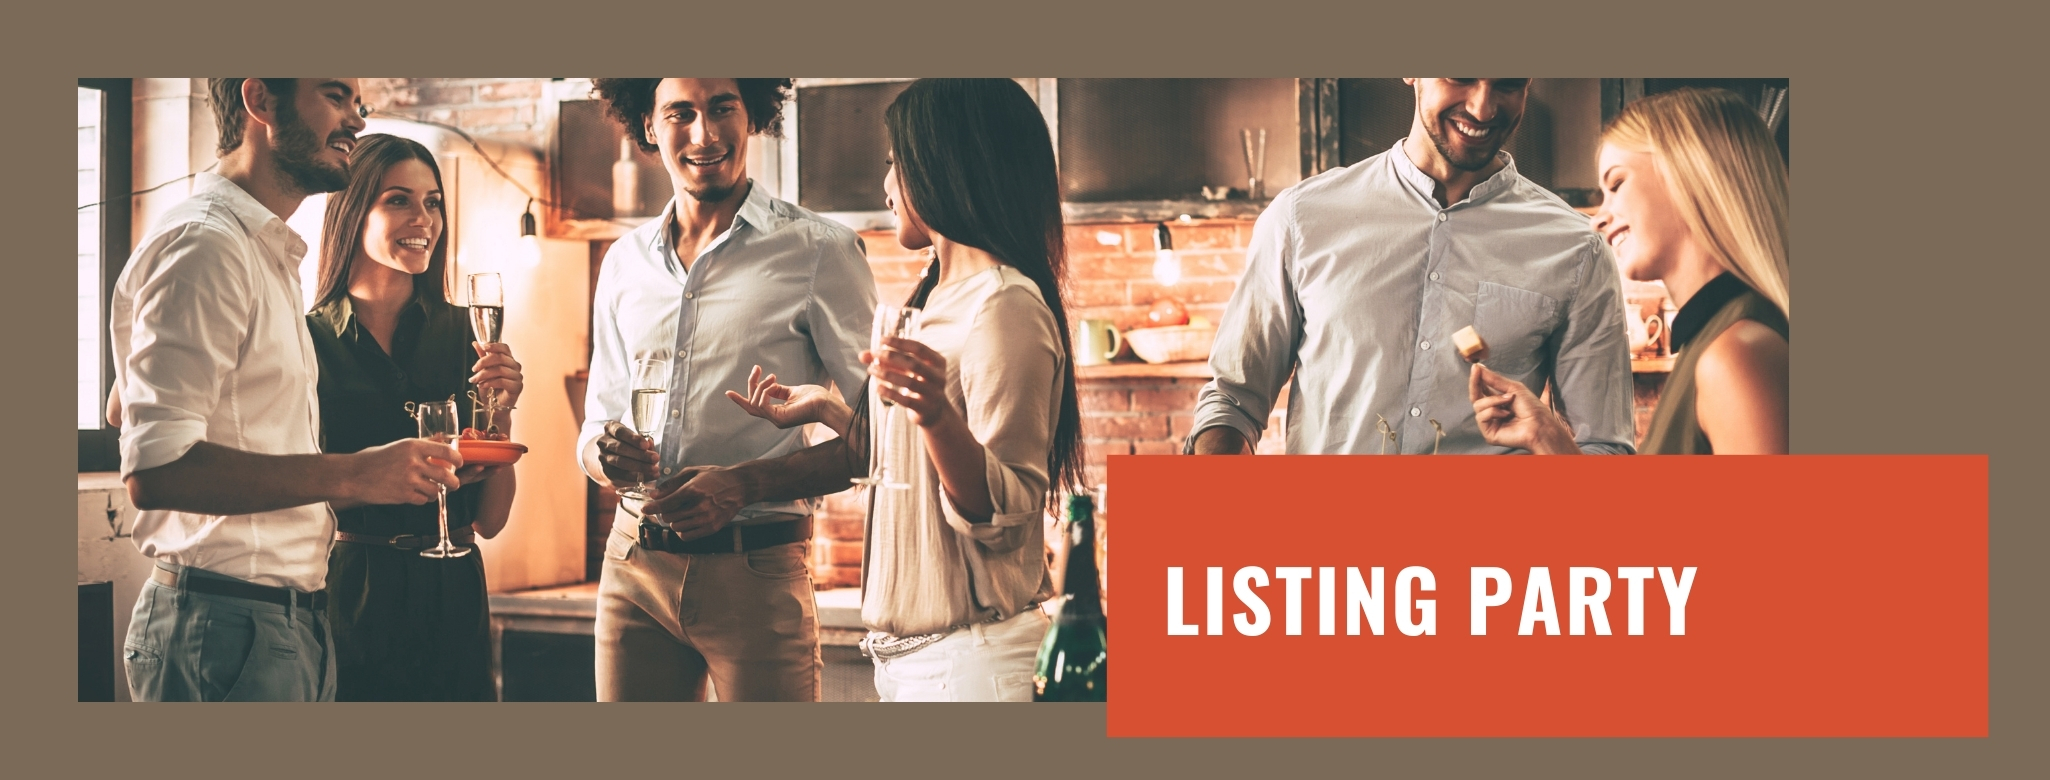 Listing Party